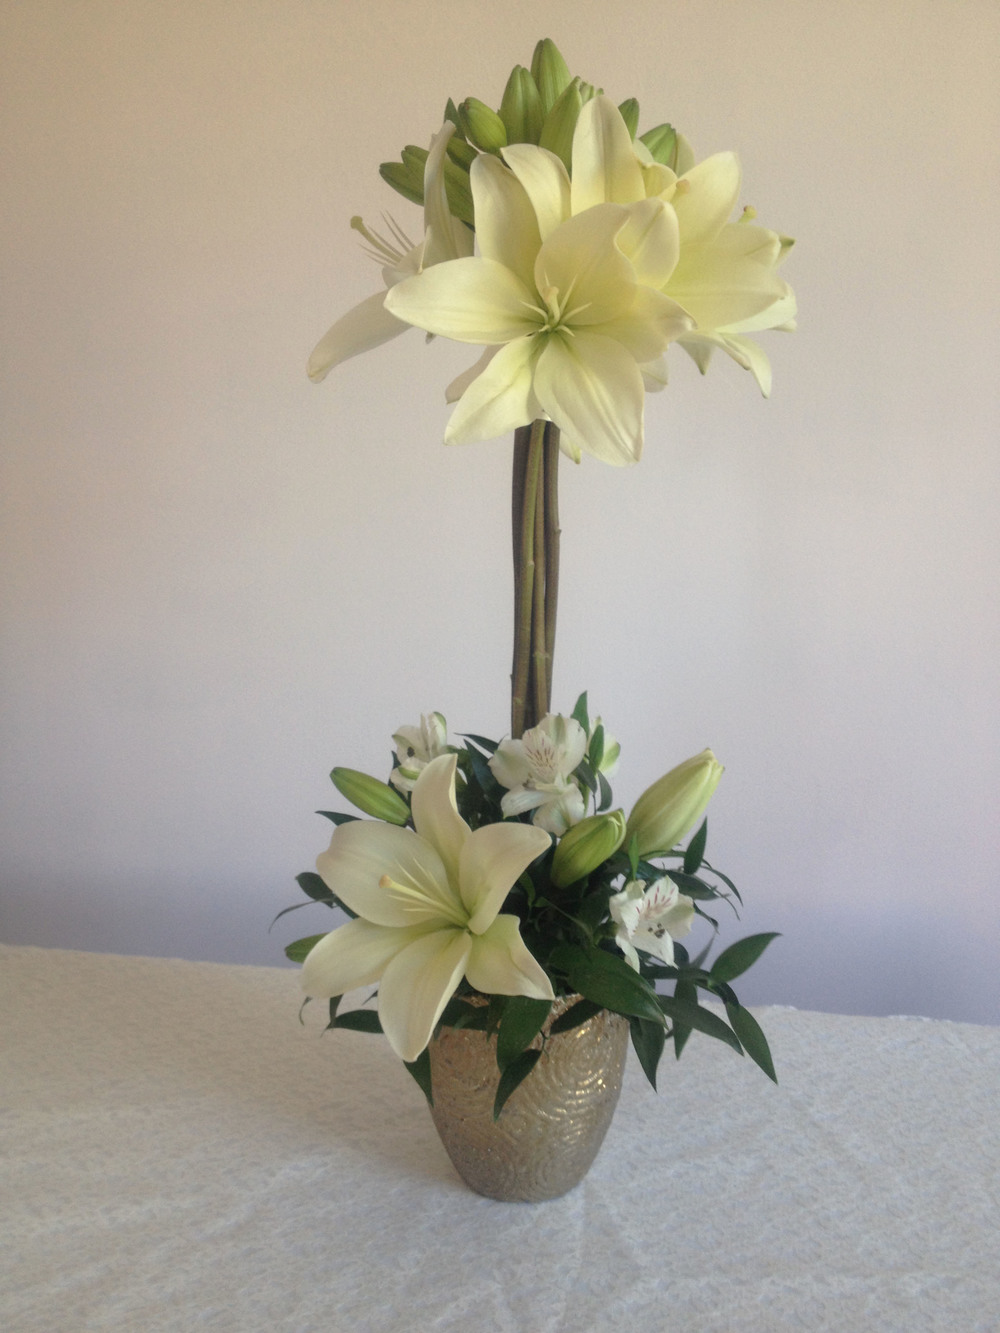 Evelisa Floral & Design's Unique Lily centerpiece